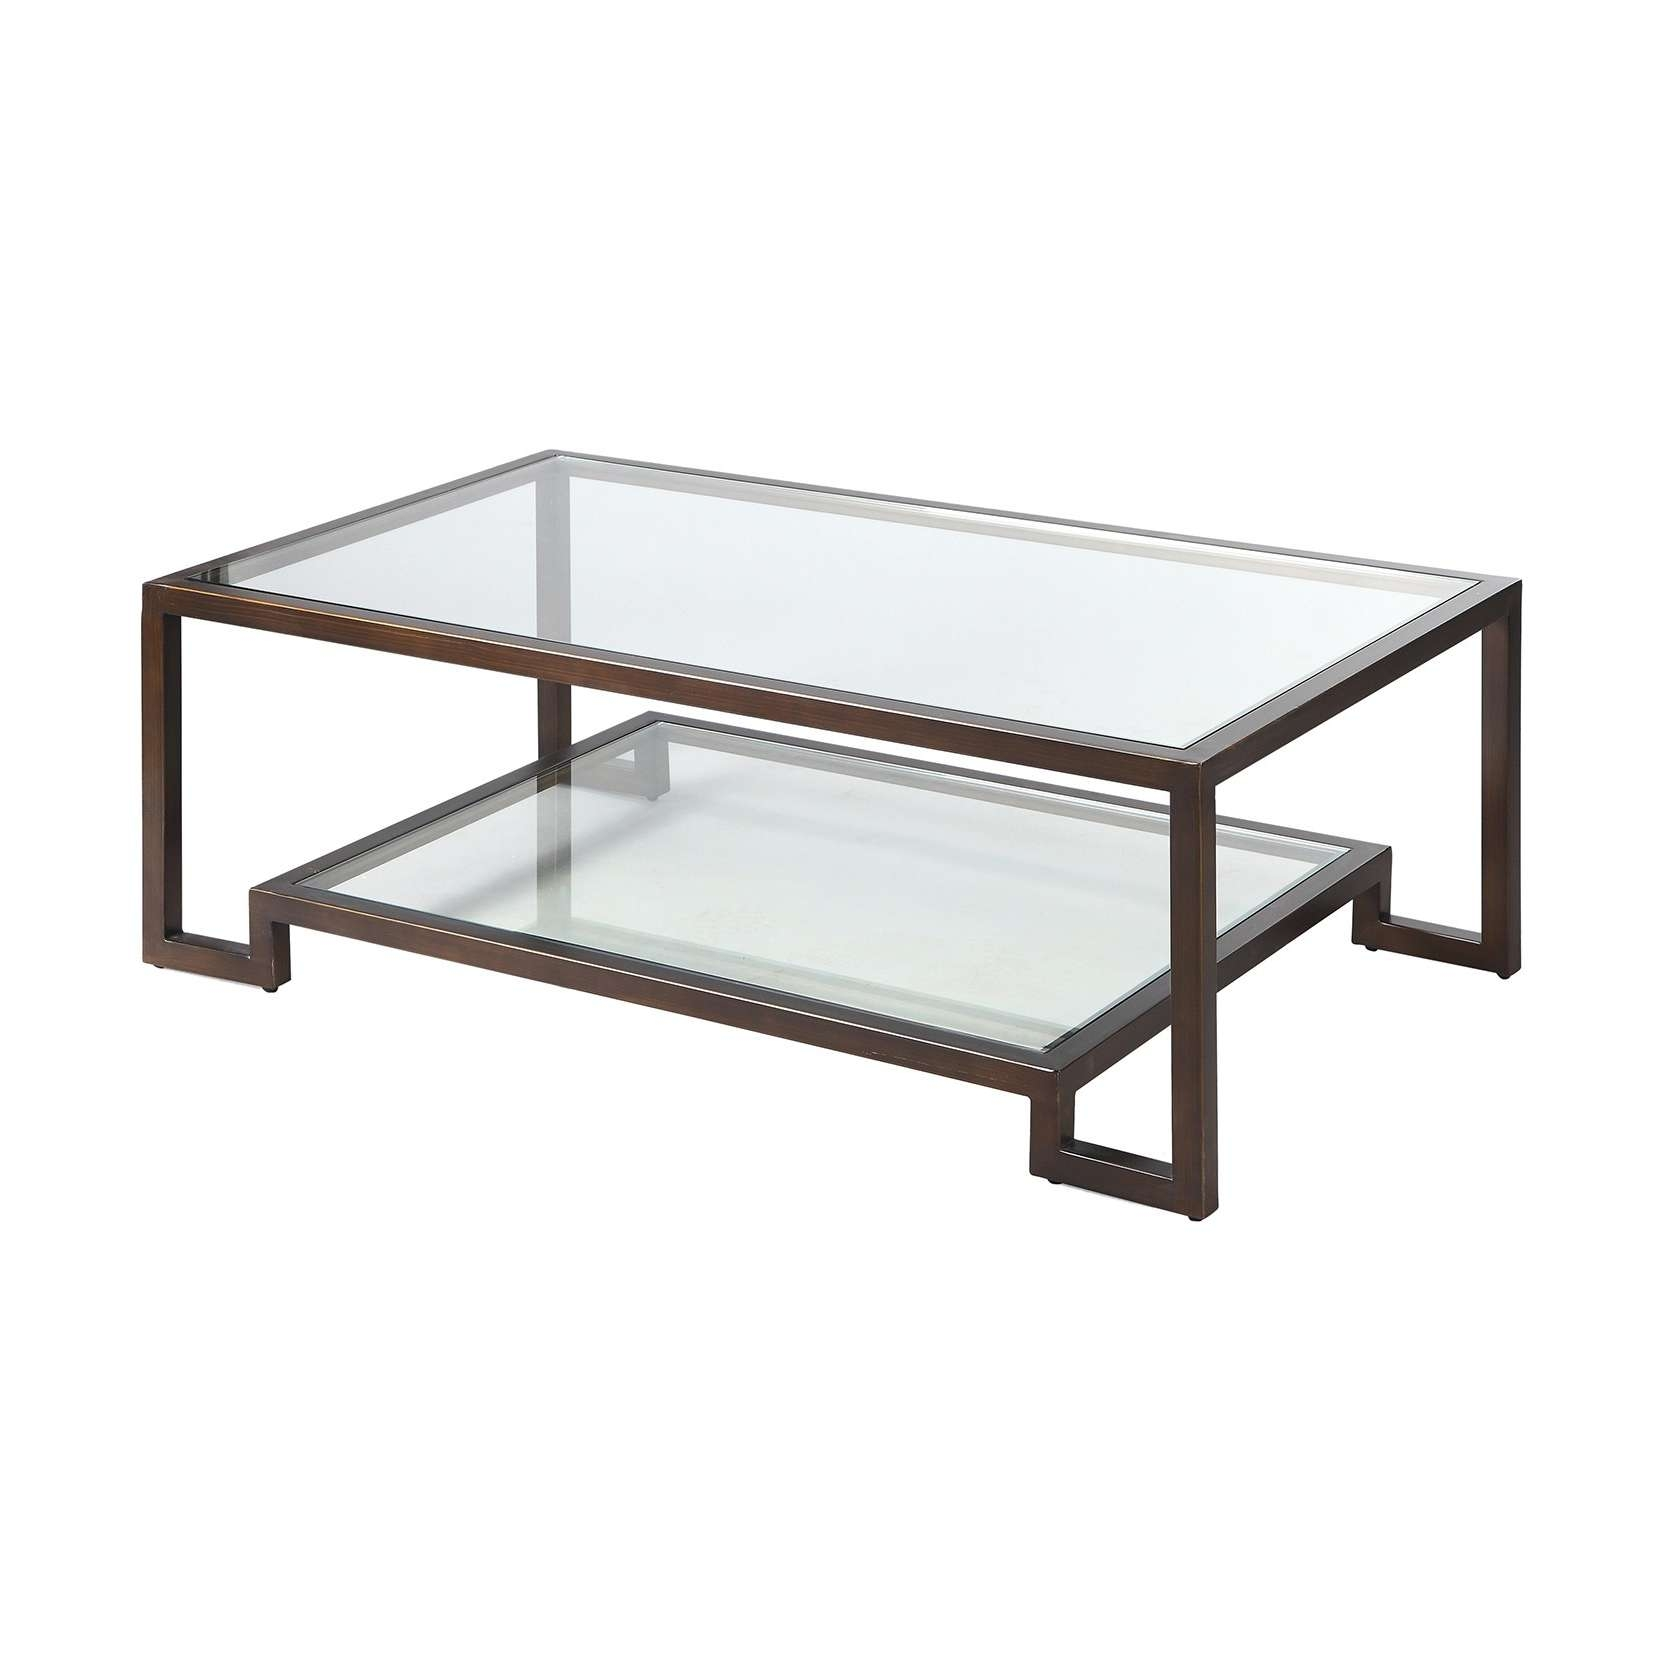 Coffee Table : Marvelous Coffee Table With Drawers Square Coffee With Regard To Favorite Bronze And Glass Coffee Tables (View 19 of 20)